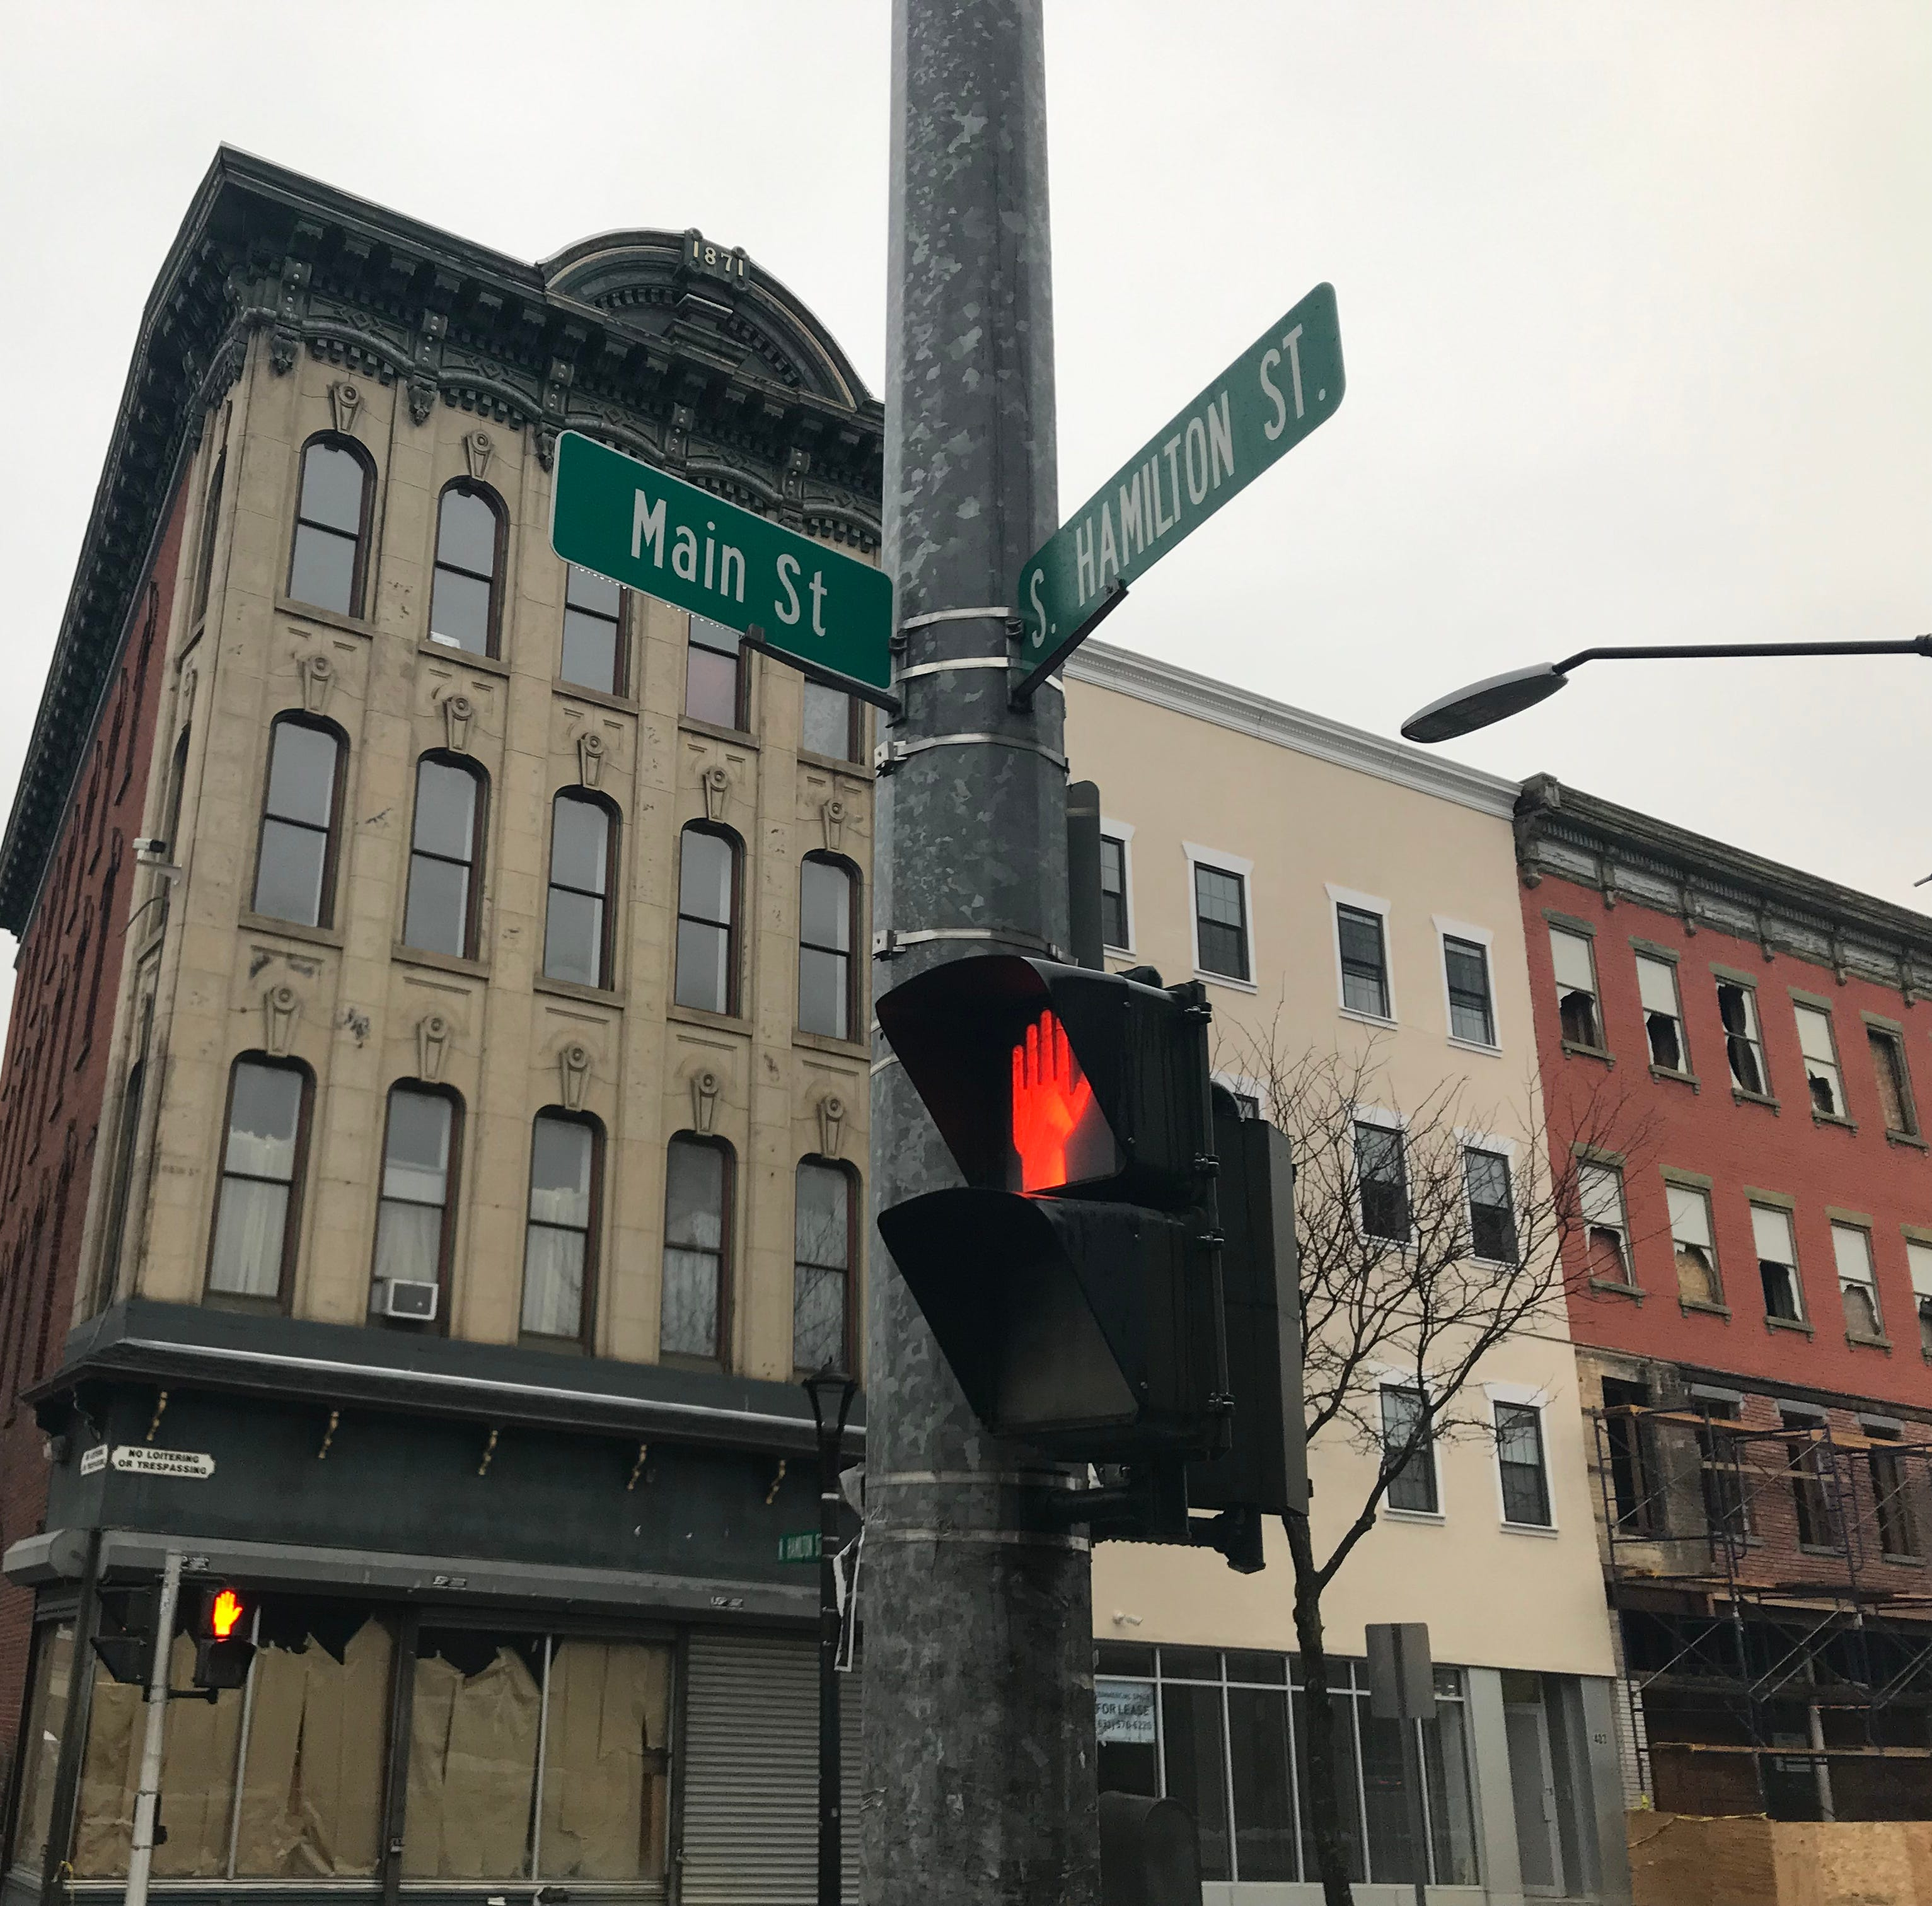 The 400 block of Main Street in the City of Poughkeepsie on Nov. 19, 2018.